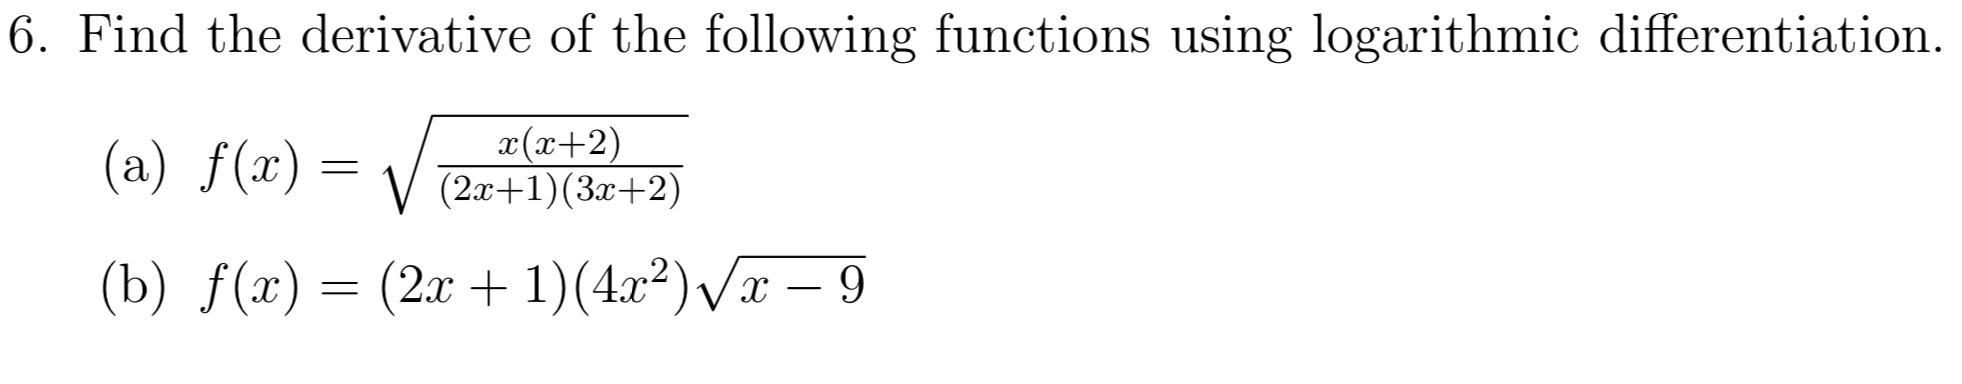 |6. Find the derivative of the following functions using logarithmic differentiation. x(x+2) (2x+1) (3+2) (a) f(x) (2r1)(422)x - 9 (b) f(x)